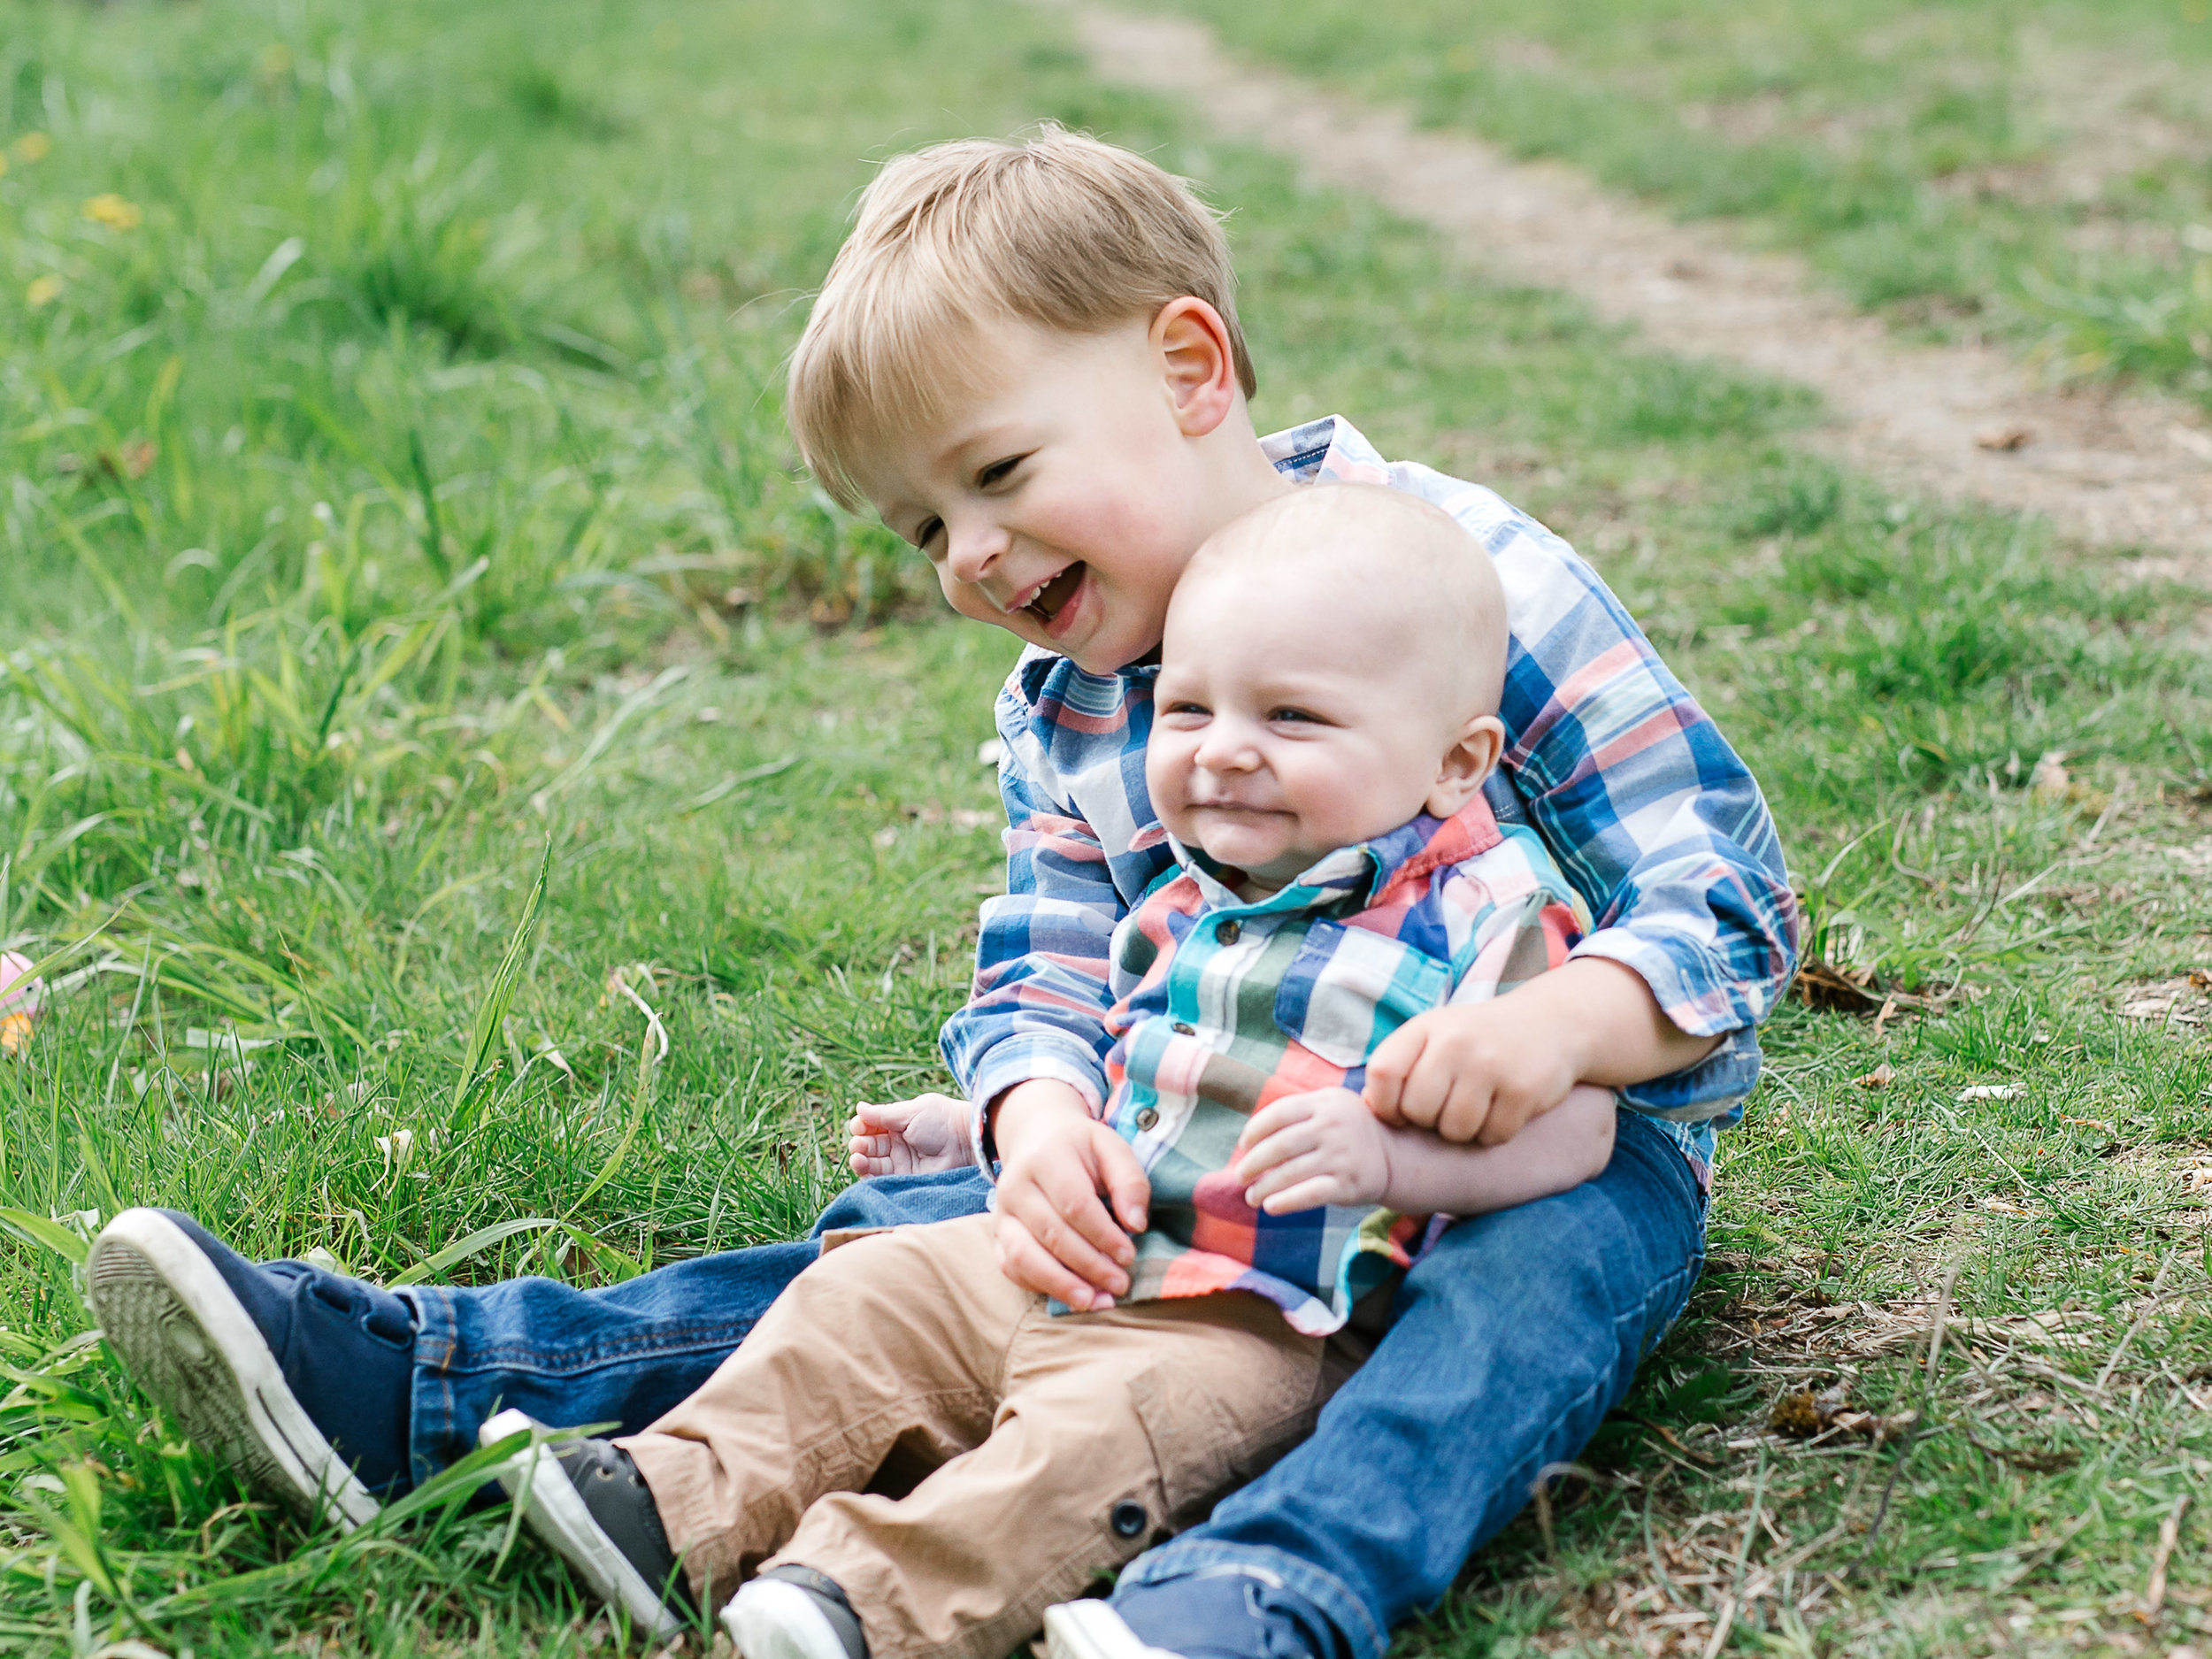 chelsea macor photography family photos lifestyle and outdoor seattle wa-6.jpg